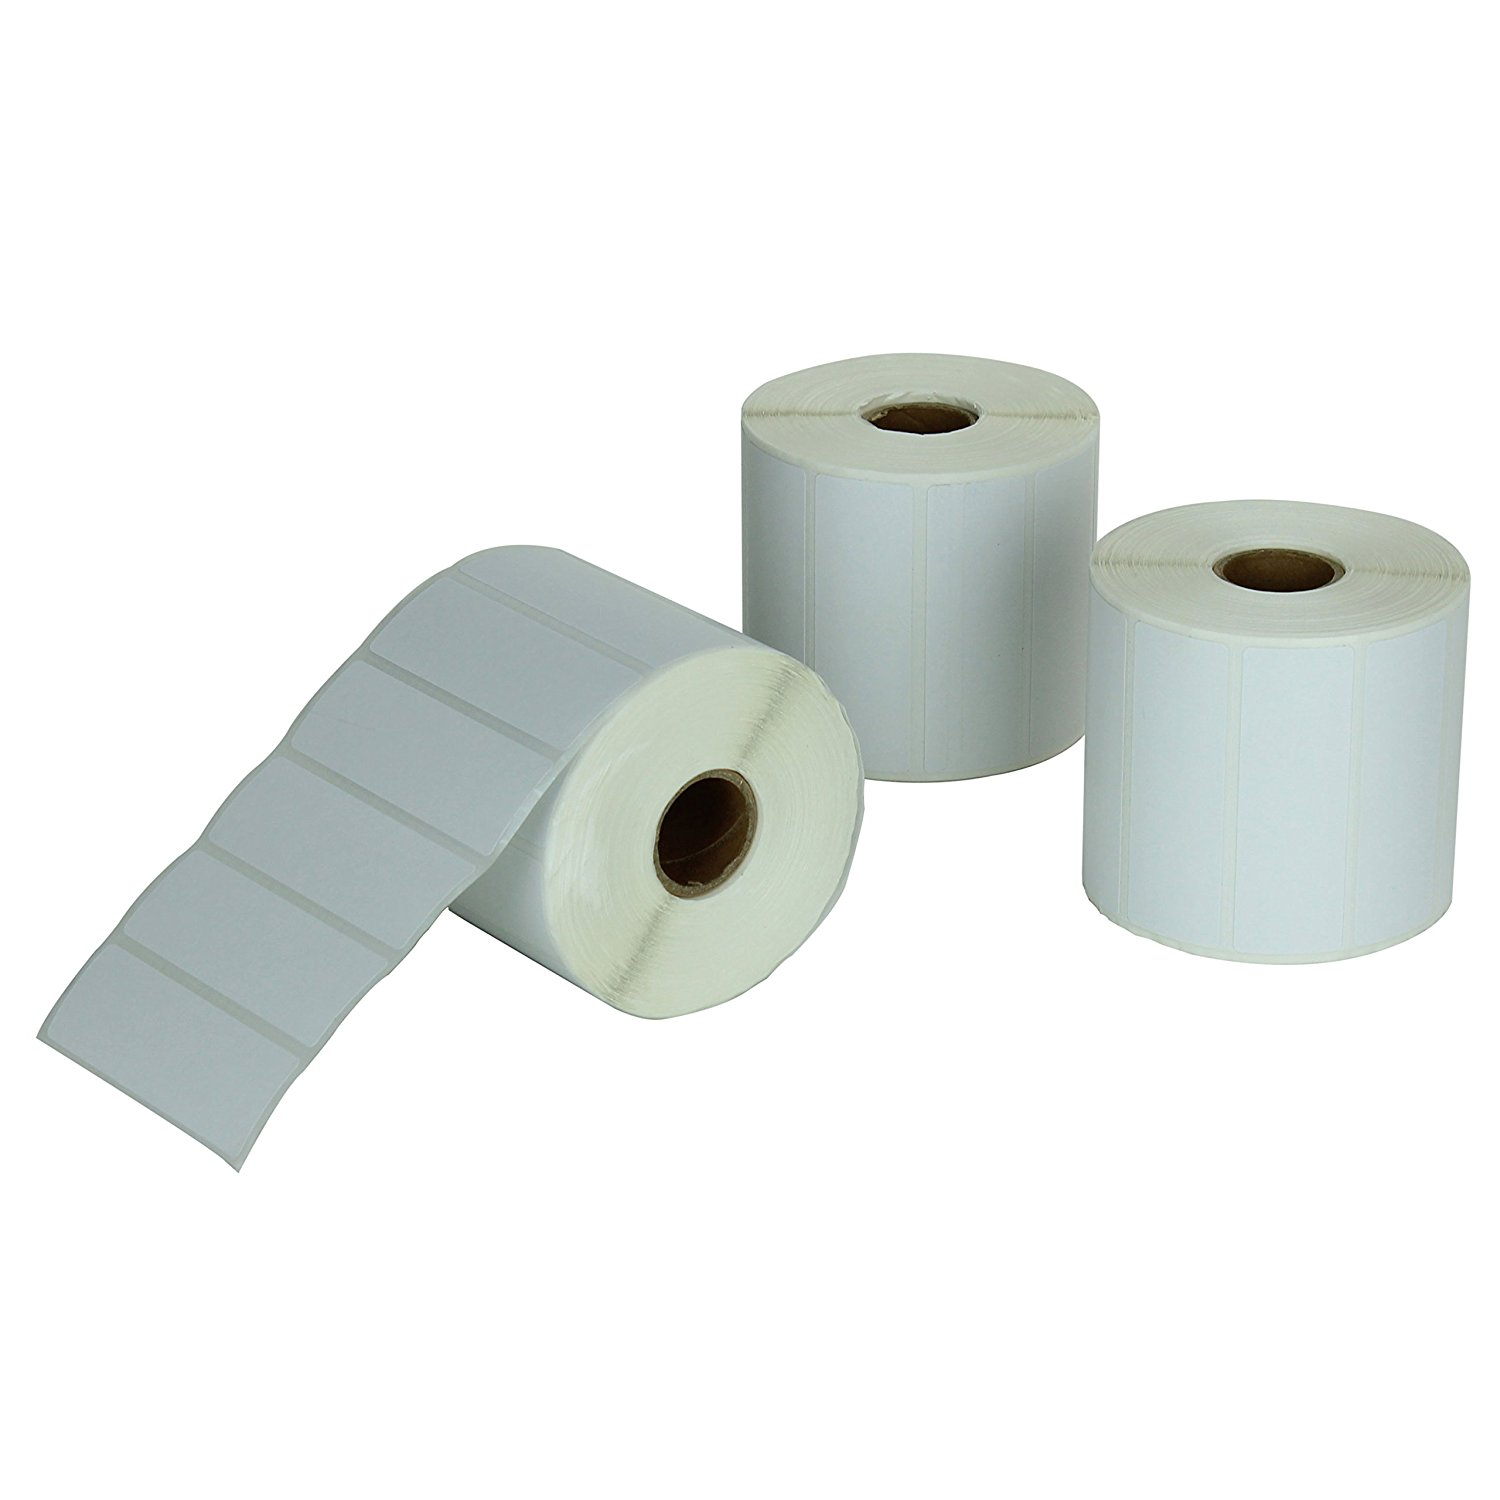 Zebra compatible direct thermal labels, zebra gk420d, thermal label rolls, zebra printer rolls, thermal shipping labels